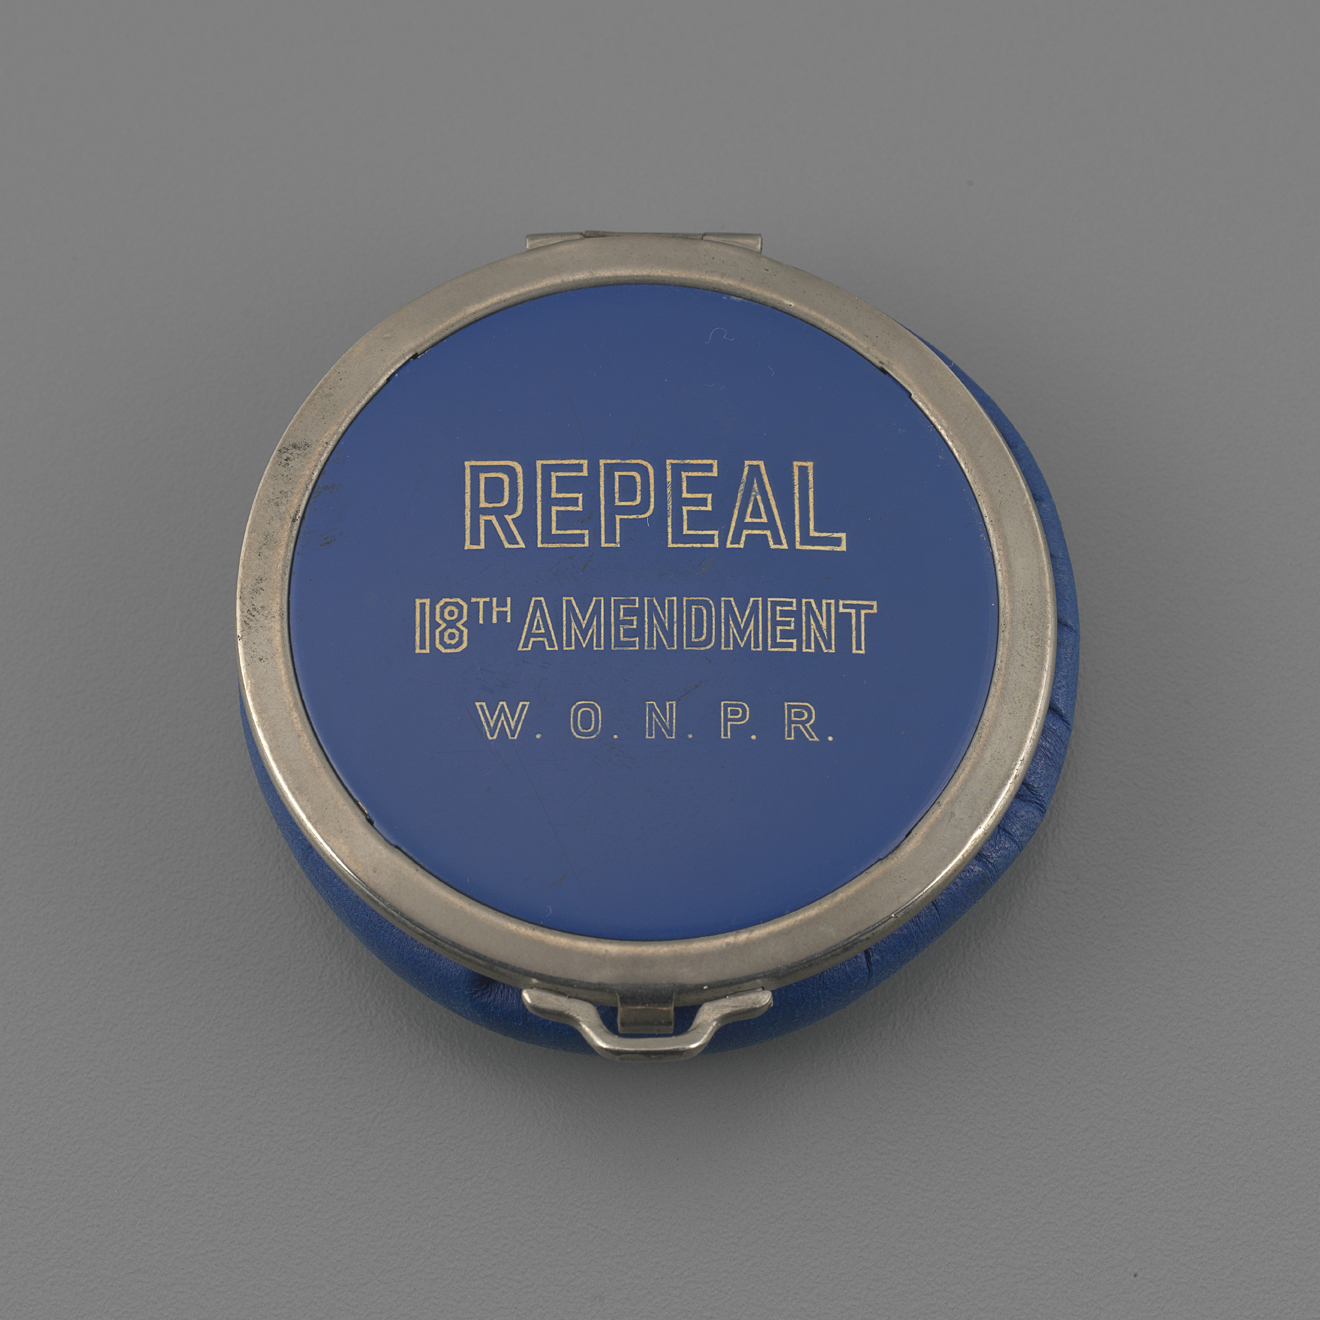 """Repeal 18th Amendment W.O.N.P.R."" Makeup Compact"